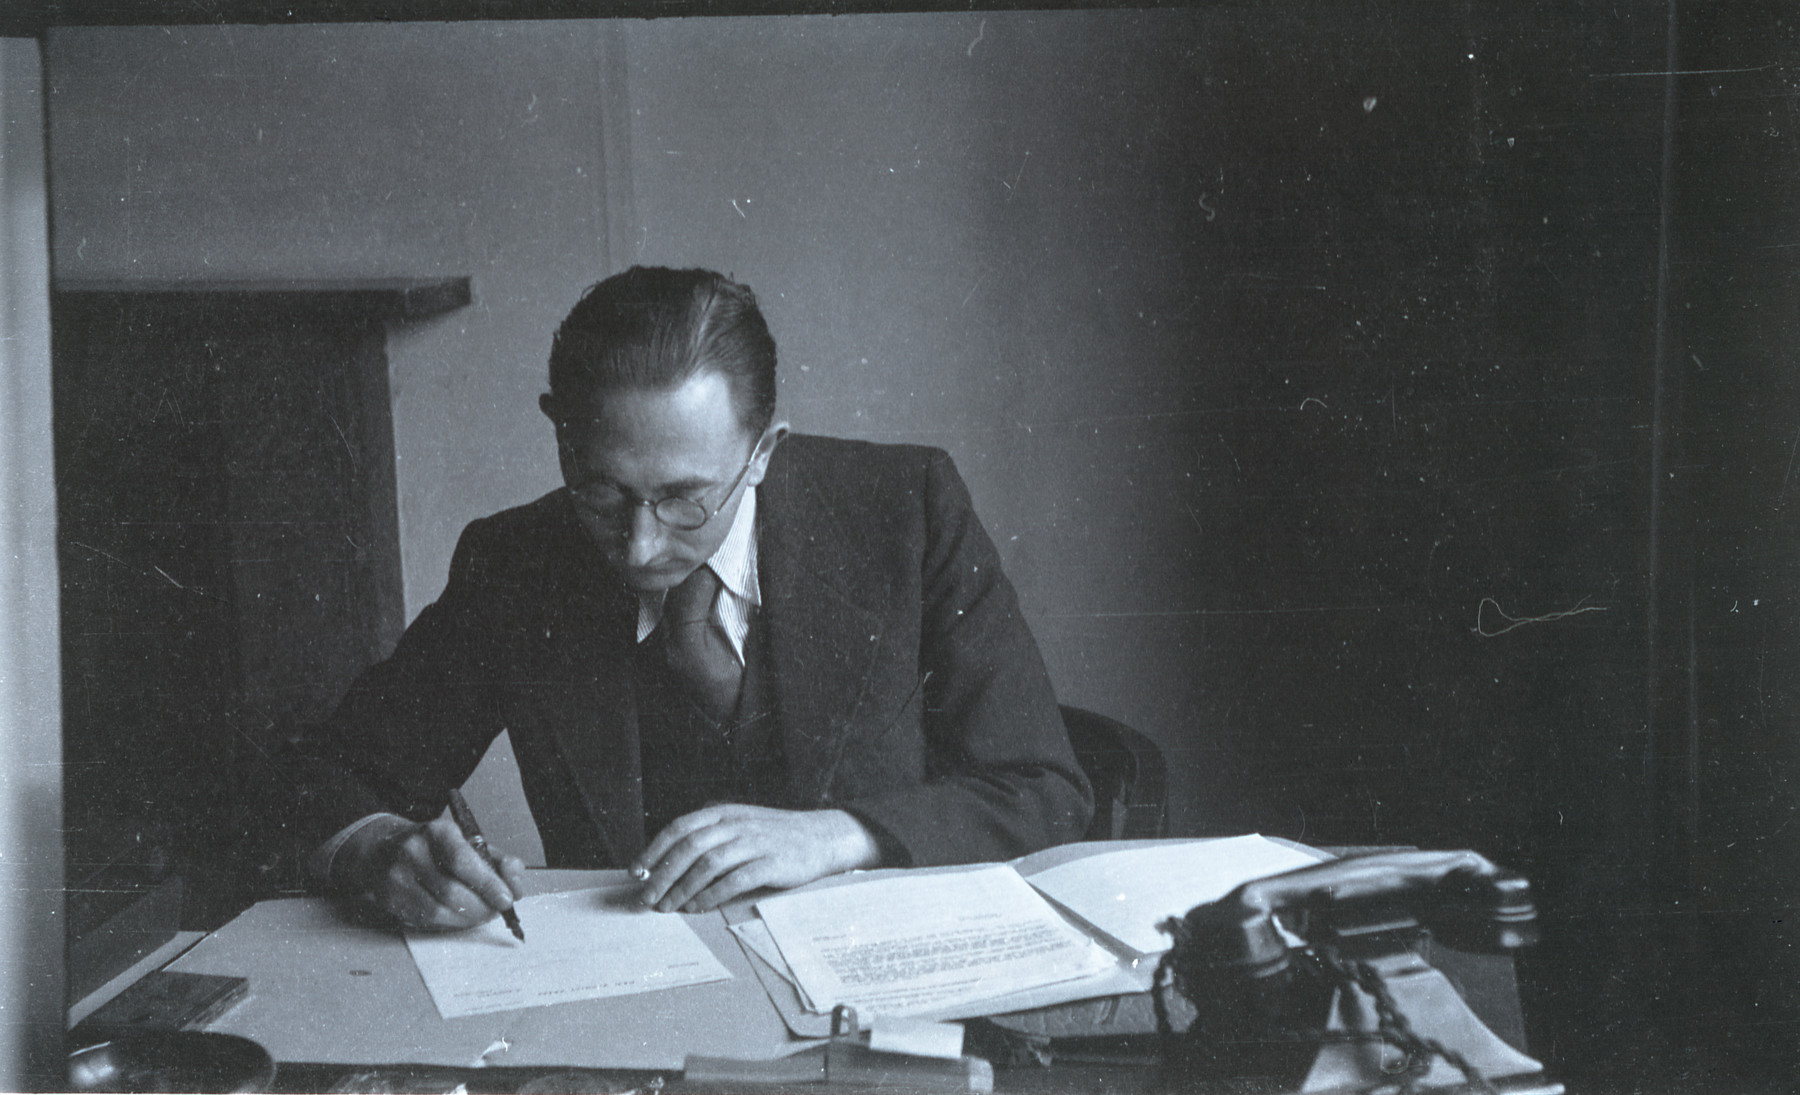 A member of the Revisionist Zionist organization in London works at his desk.